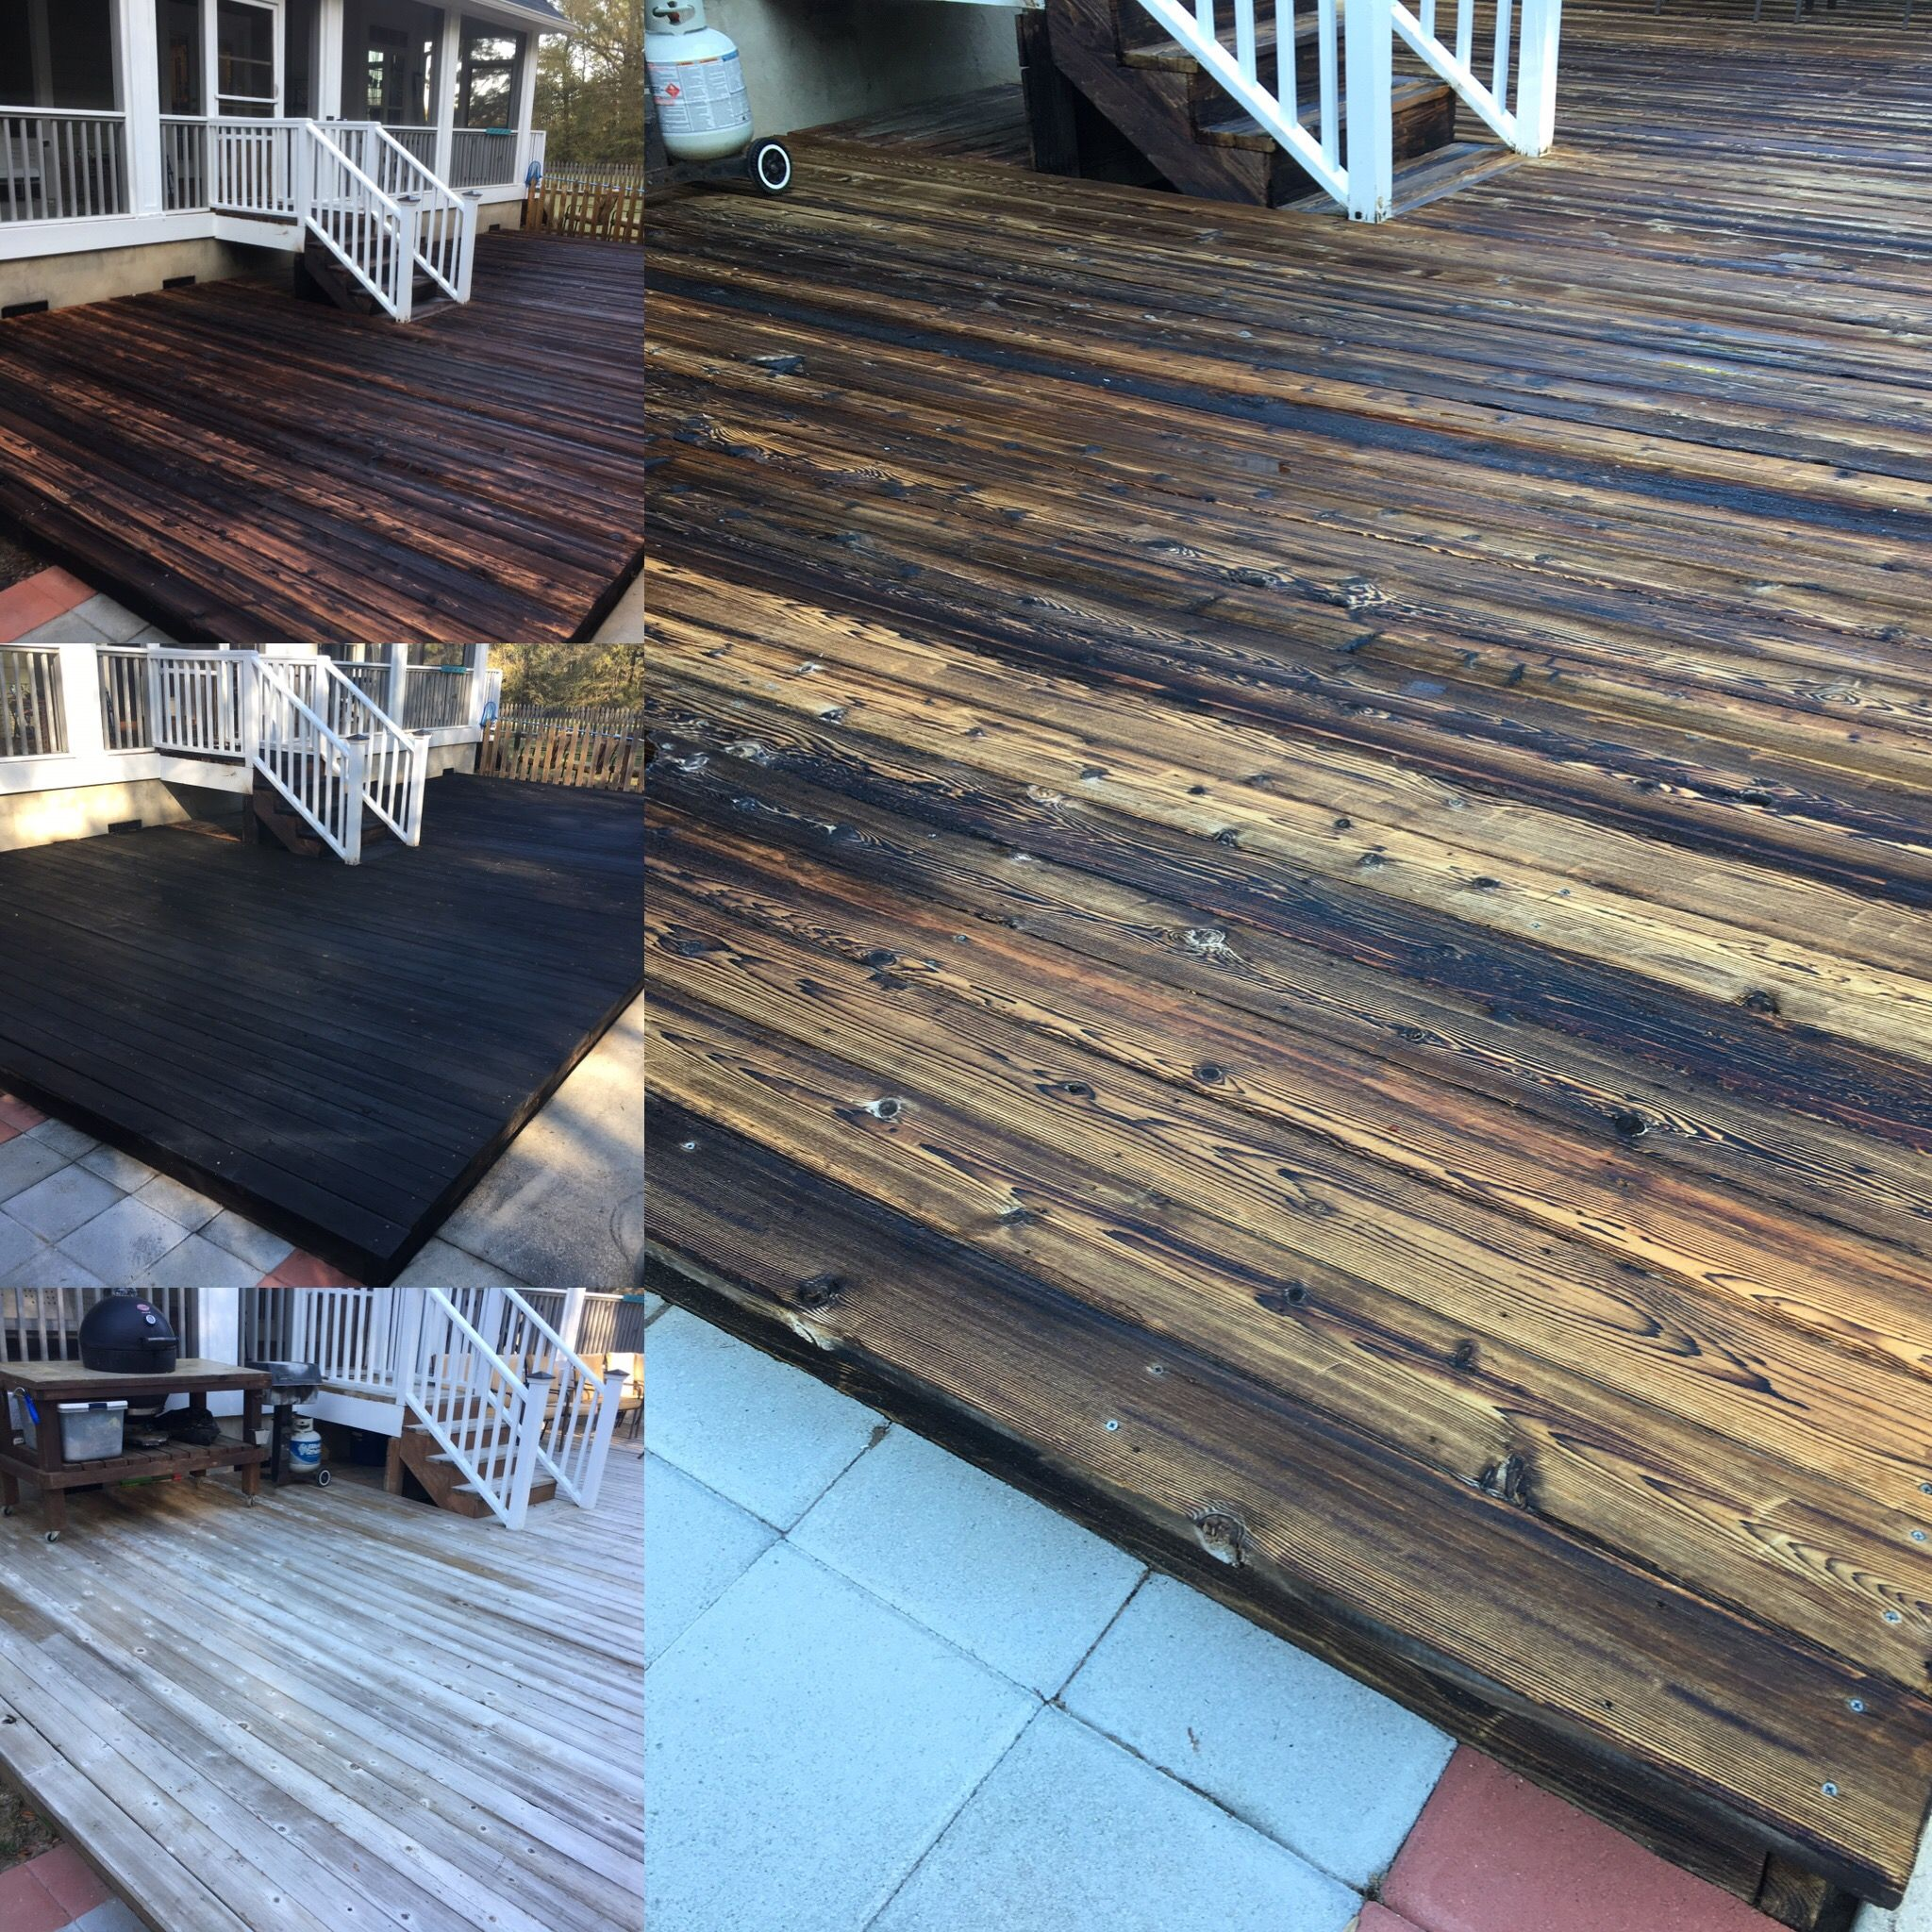 Shou sugi ban yakisugi deck completed on 30 year old for Reclaimed wood decking